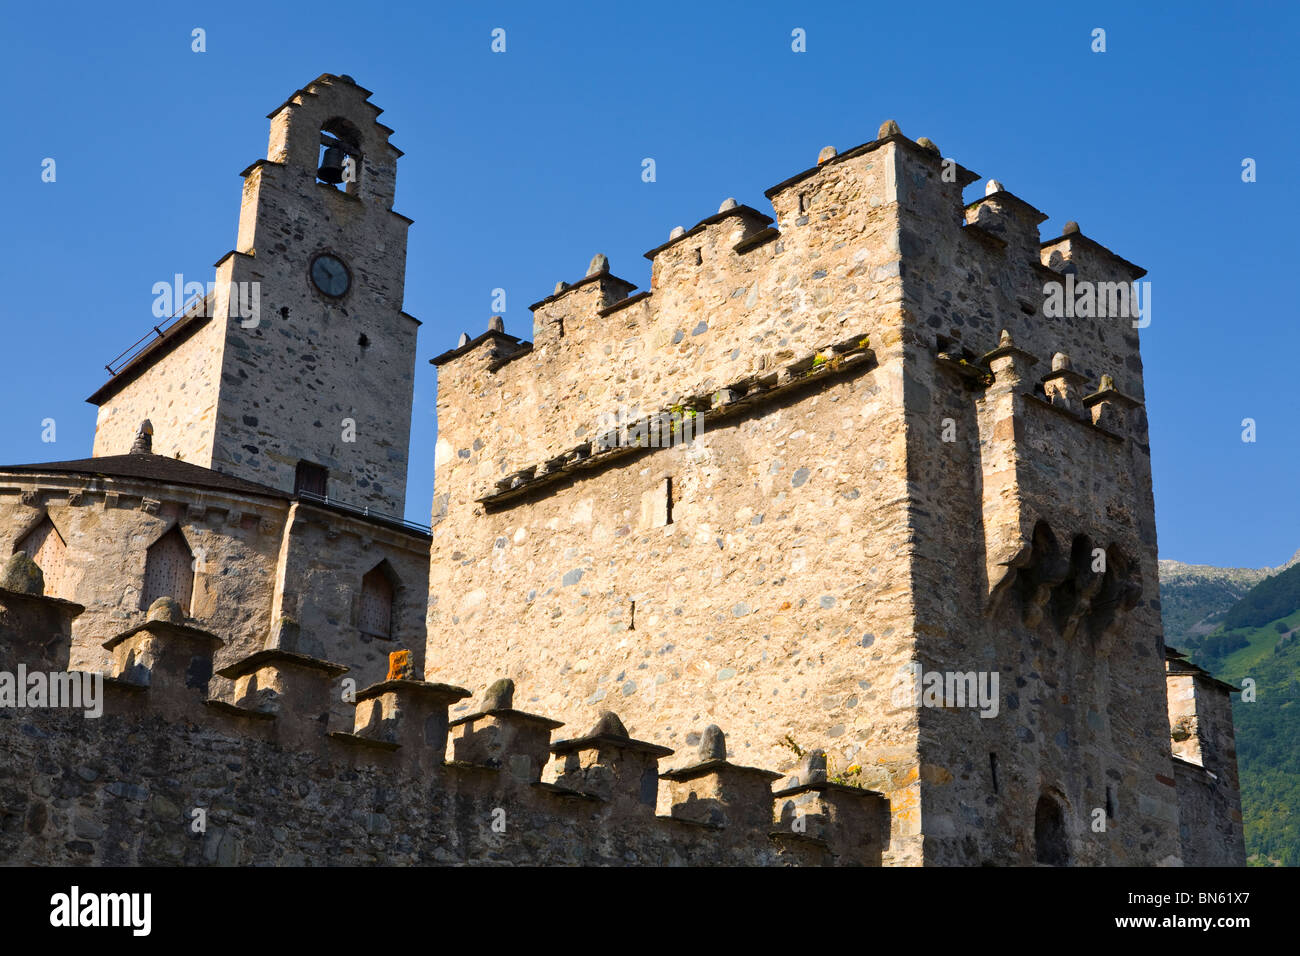 St Andre's Fortified Church, Luz-Saint-Sauveur, Midi Pyrenees, France - Stock Image